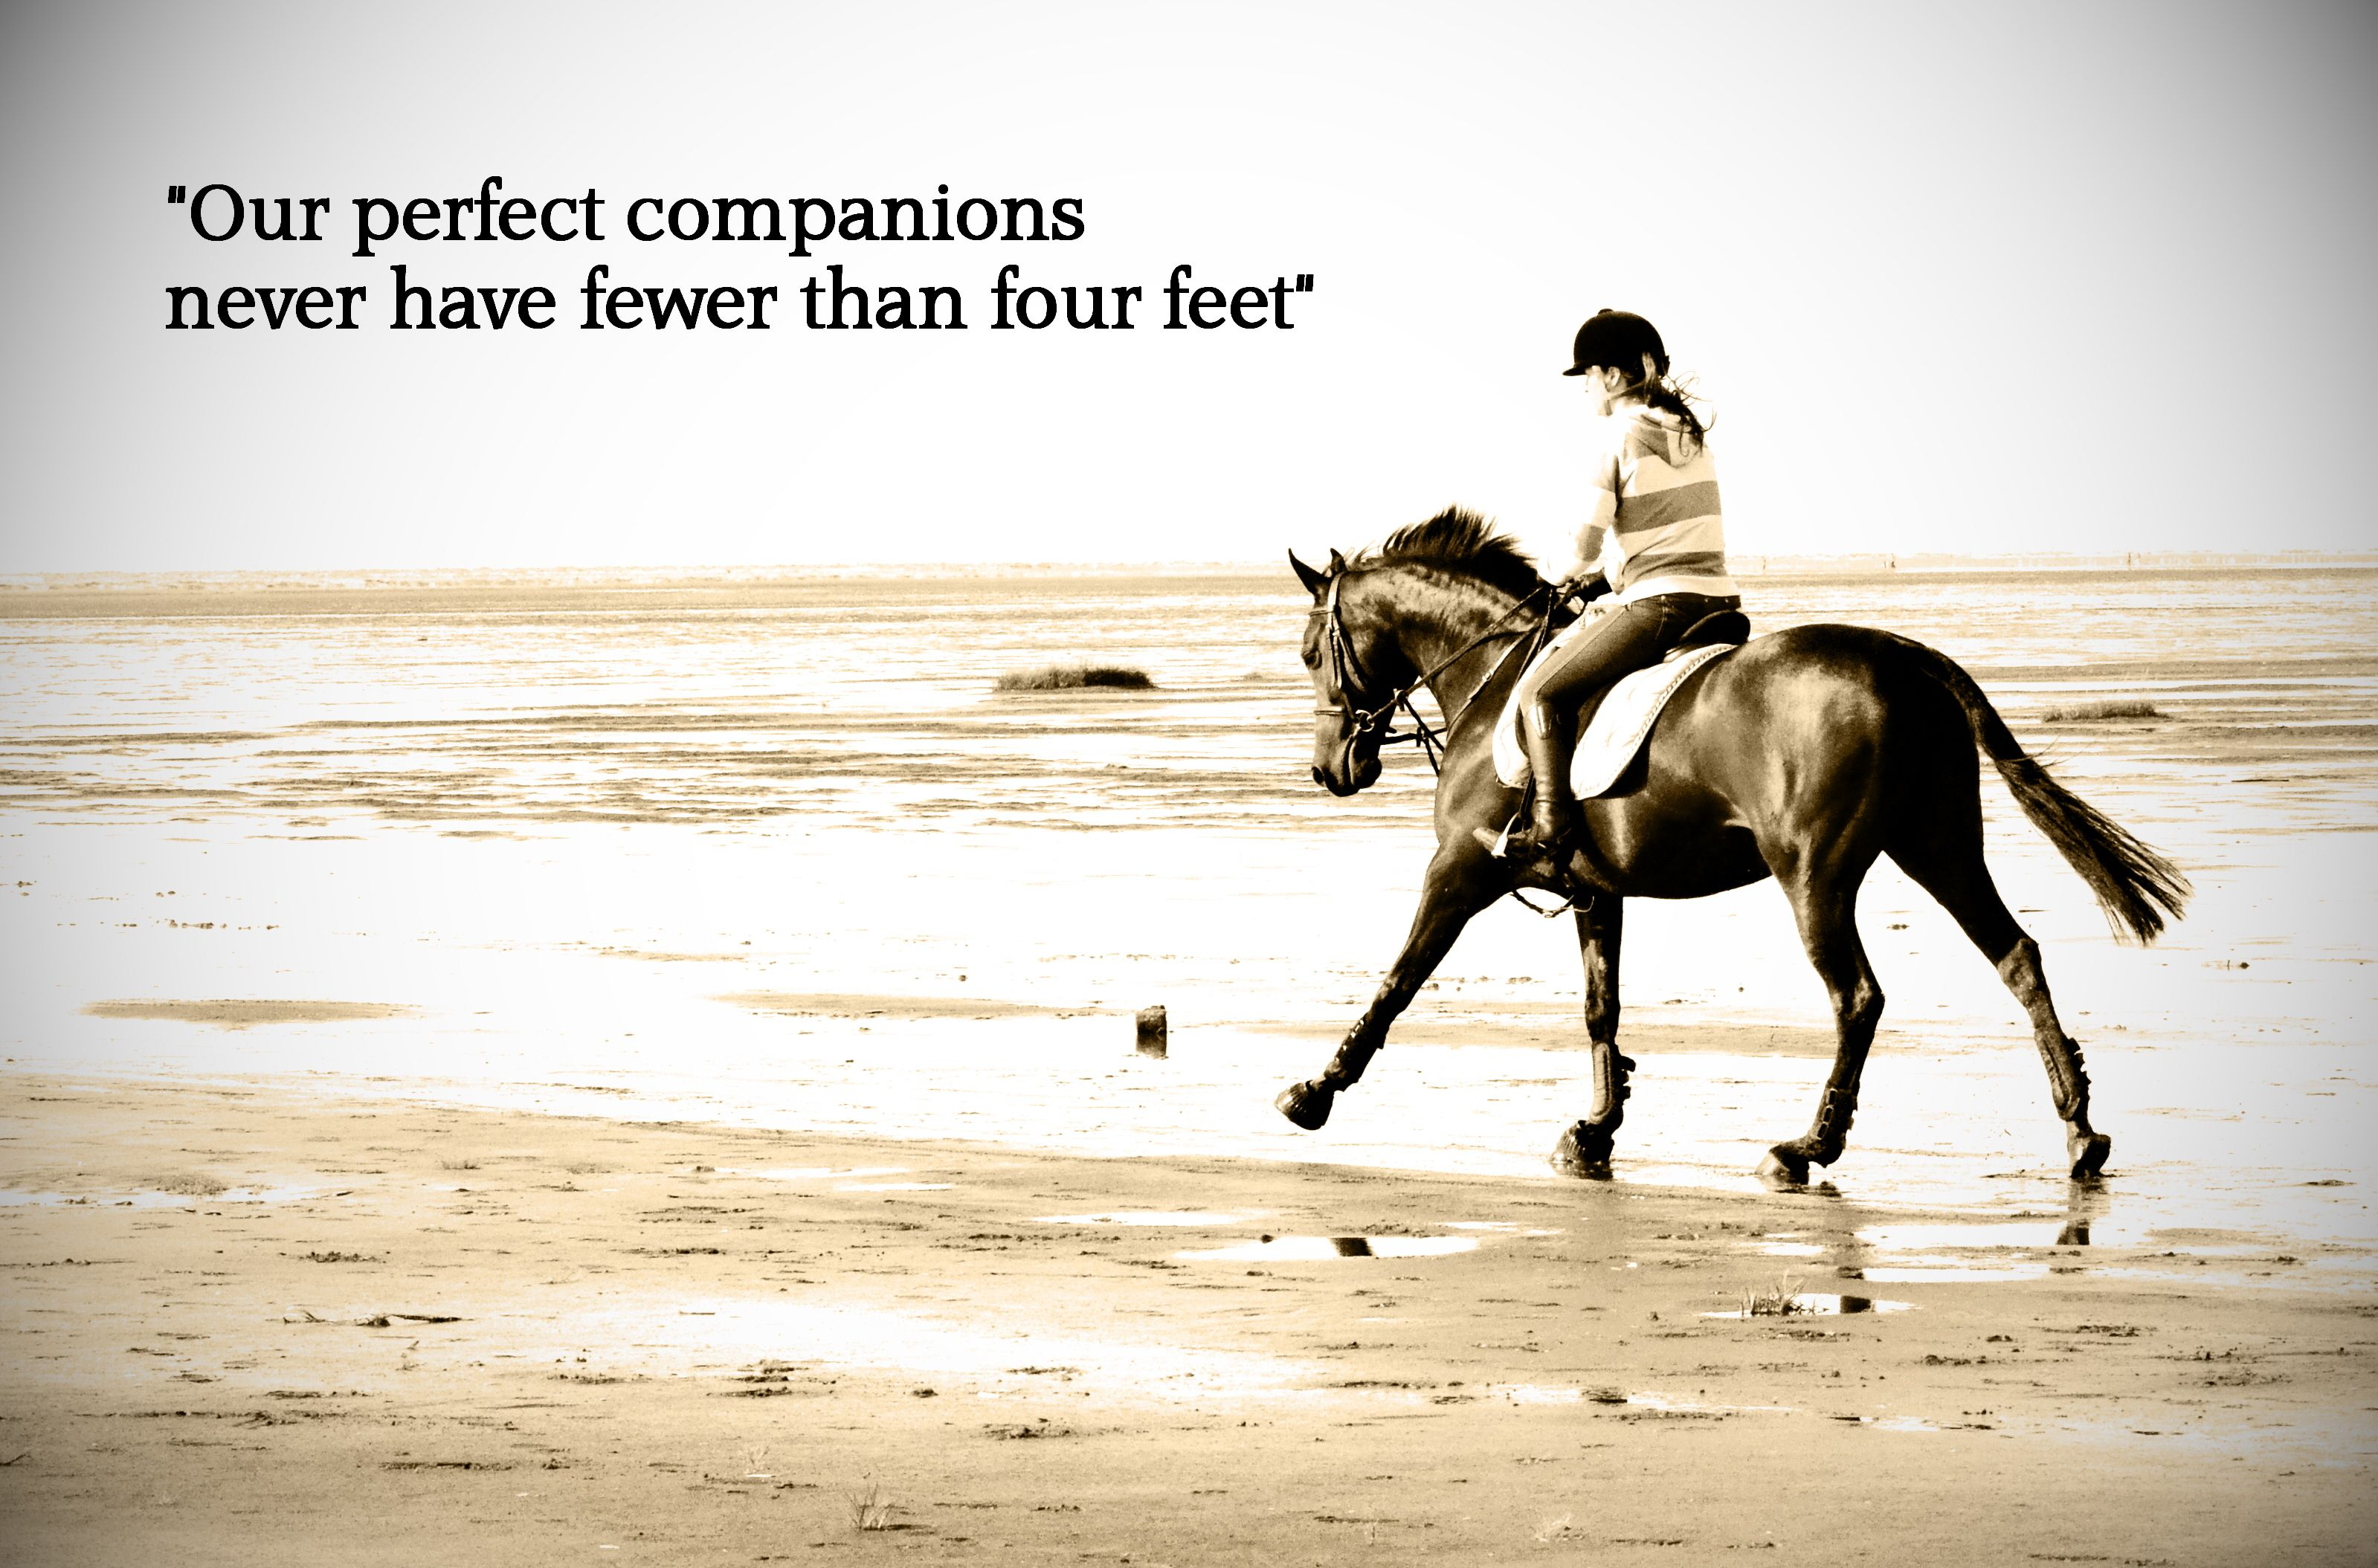 Pics photos quote i wrote for my horse com account s equestrian - Famous Quotes Horse Beach Horse Riding